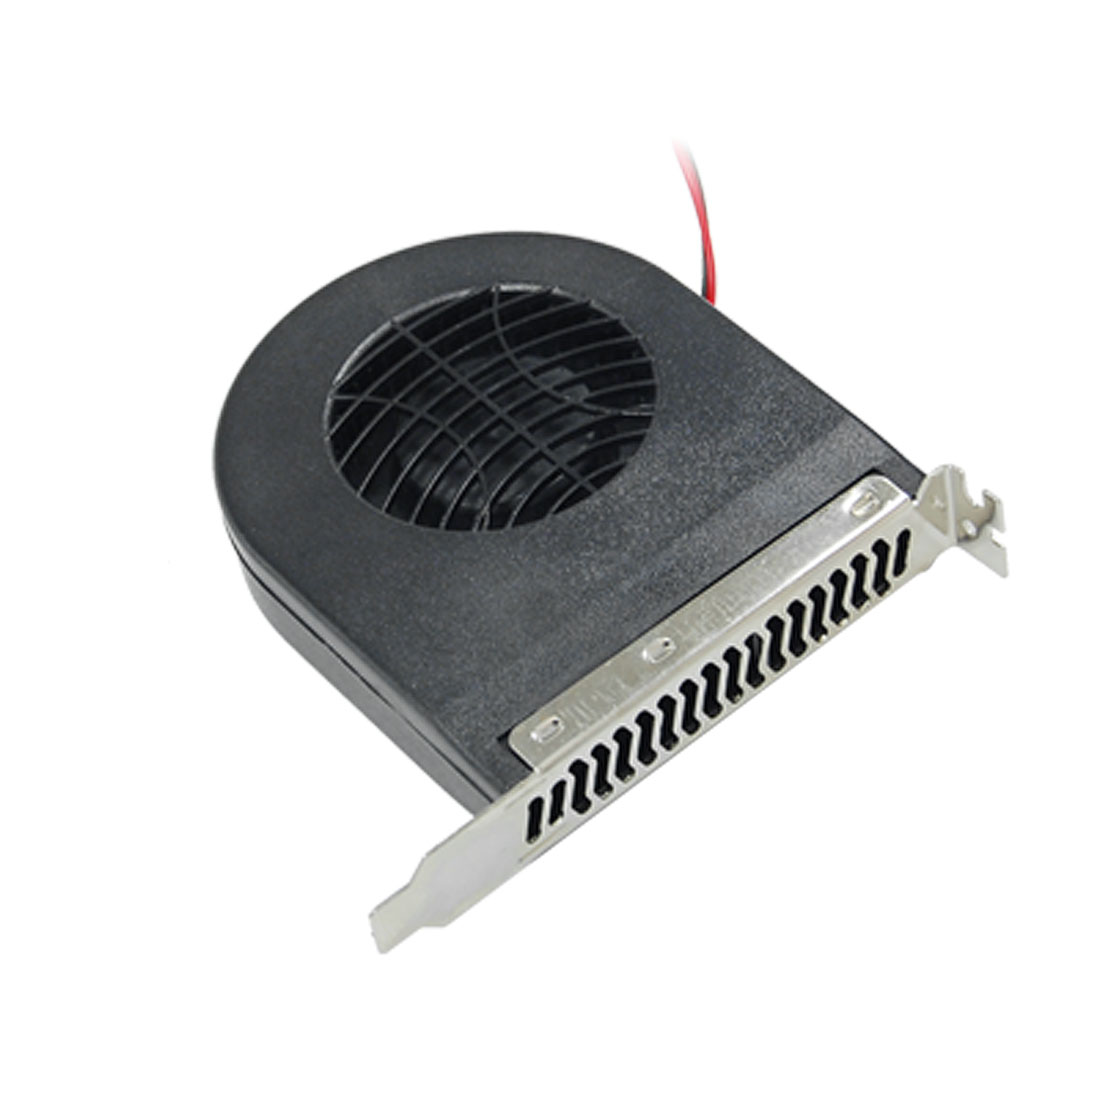 Laptop Notebook CPU Cooling Fan Cooler 4 Pin 3000RPM